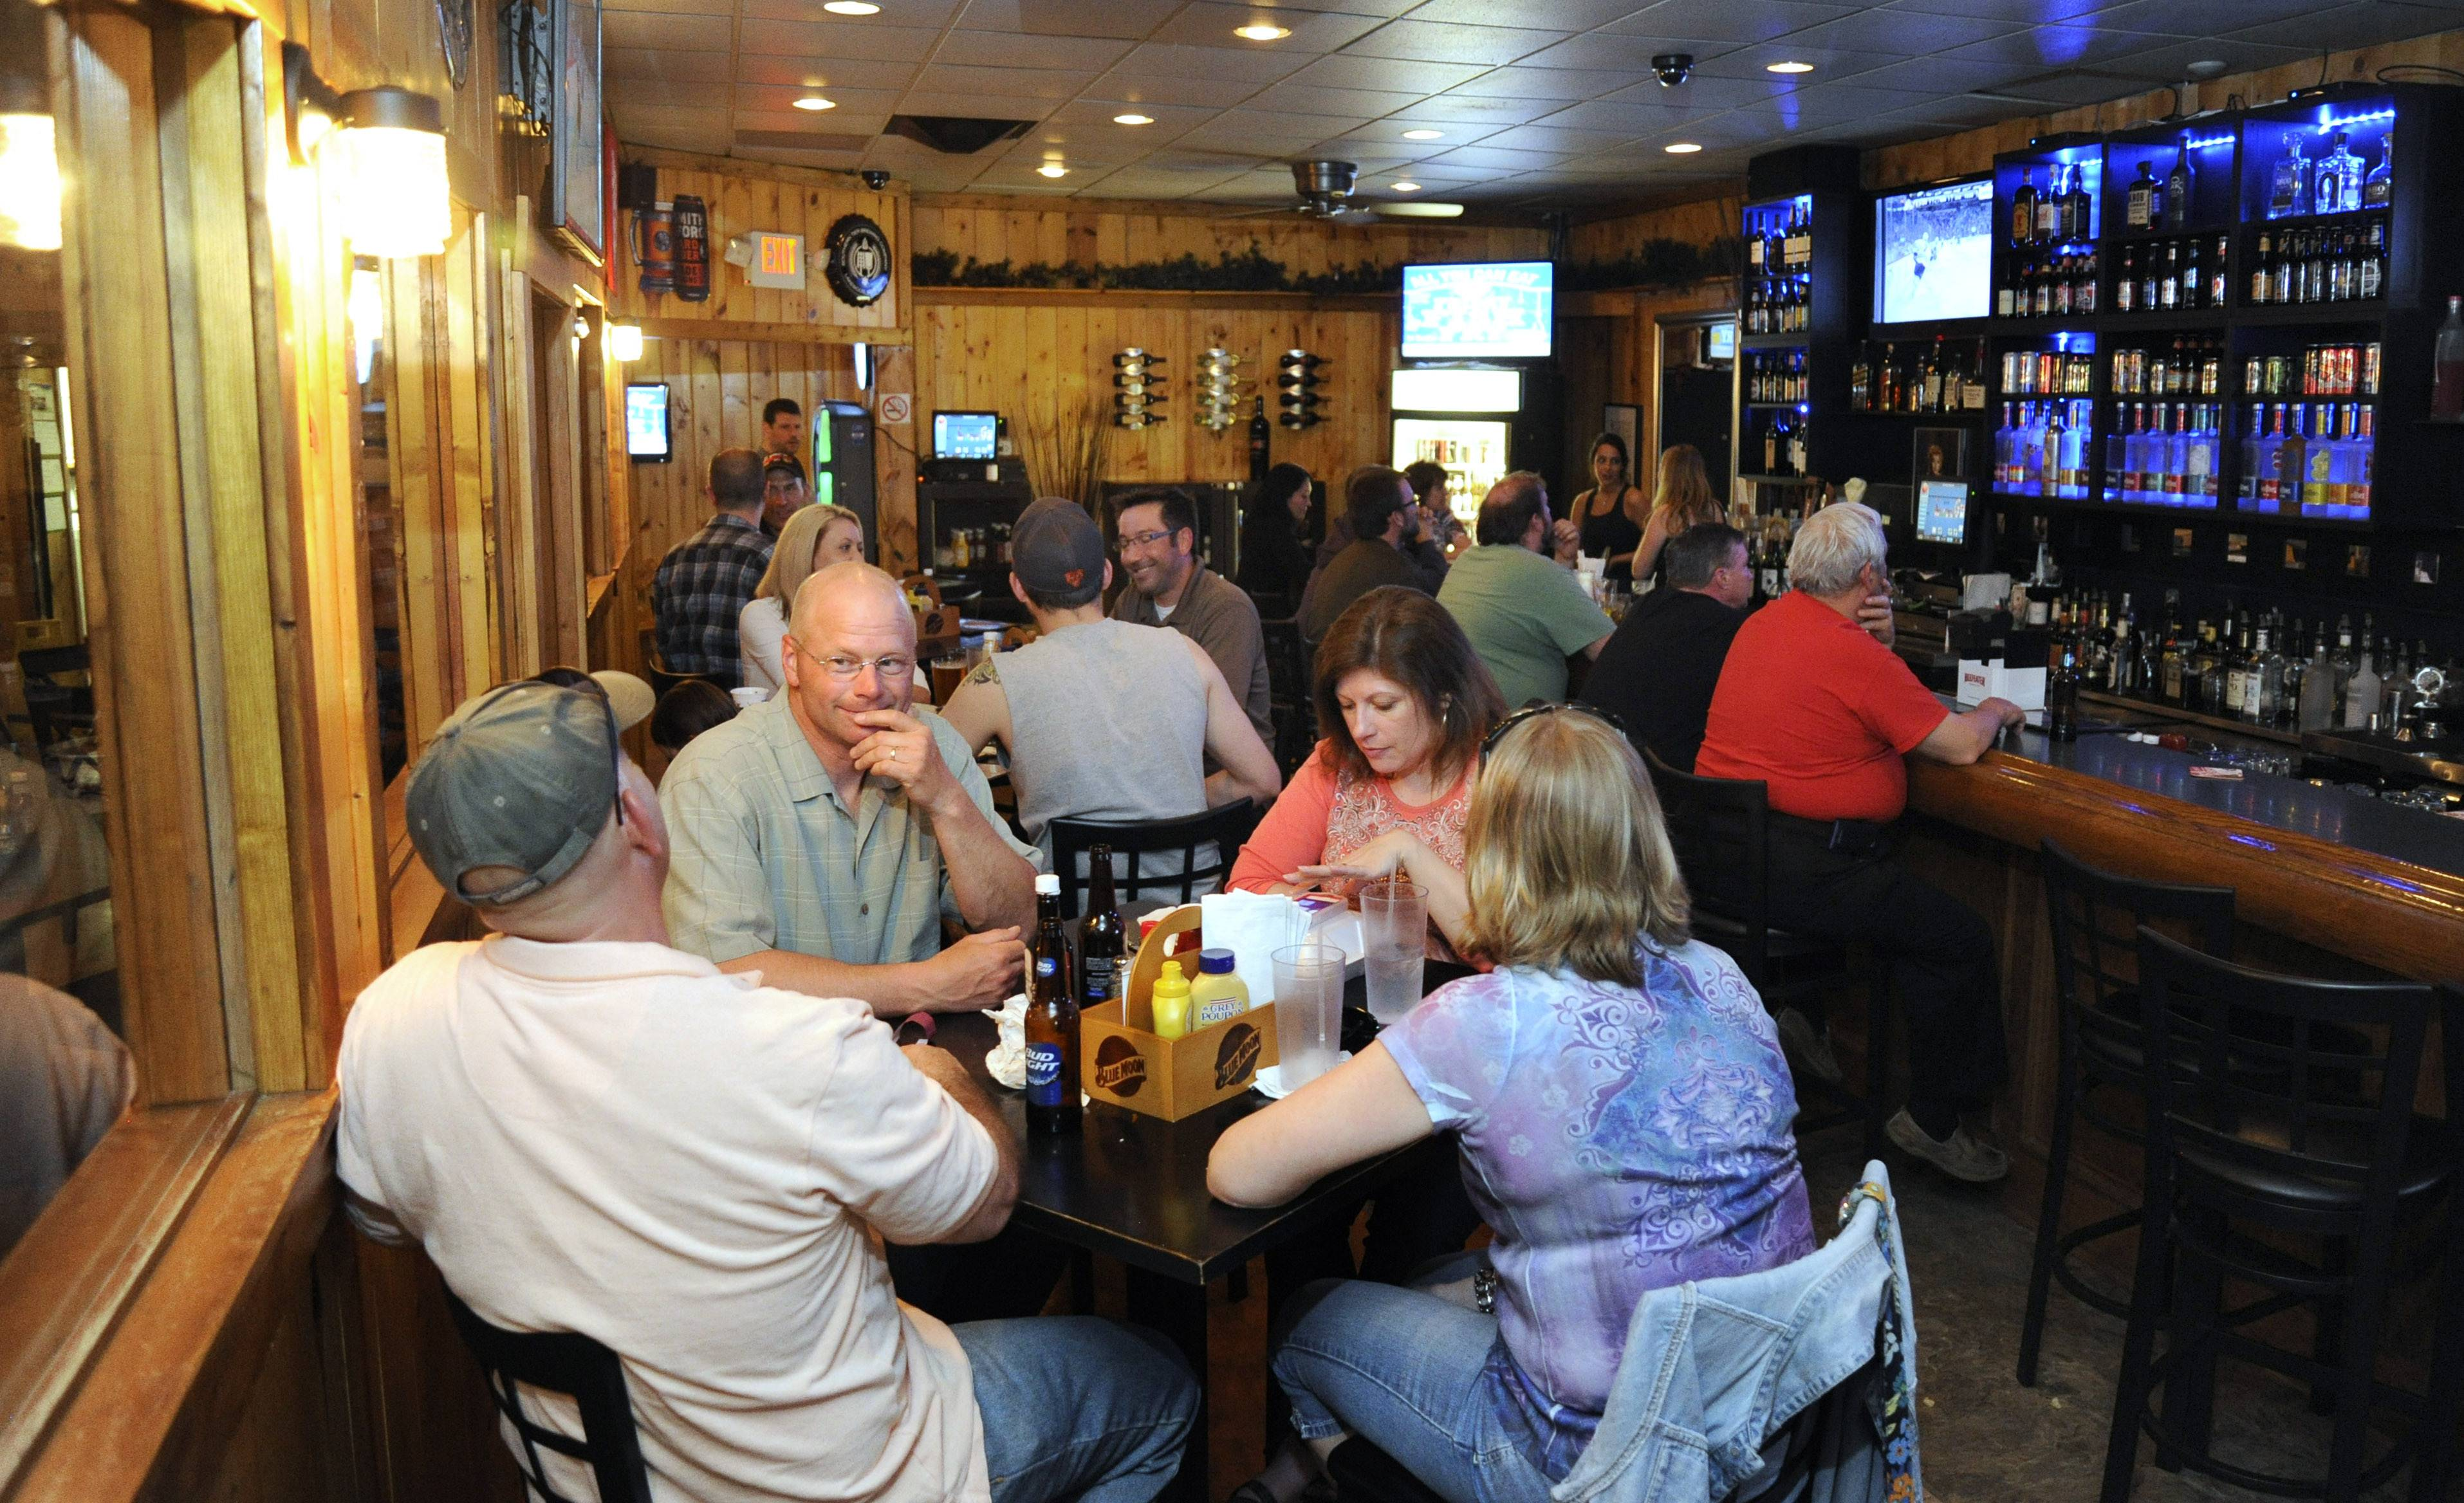 The Range Grill & Tap caters to both a bar crowd and families.